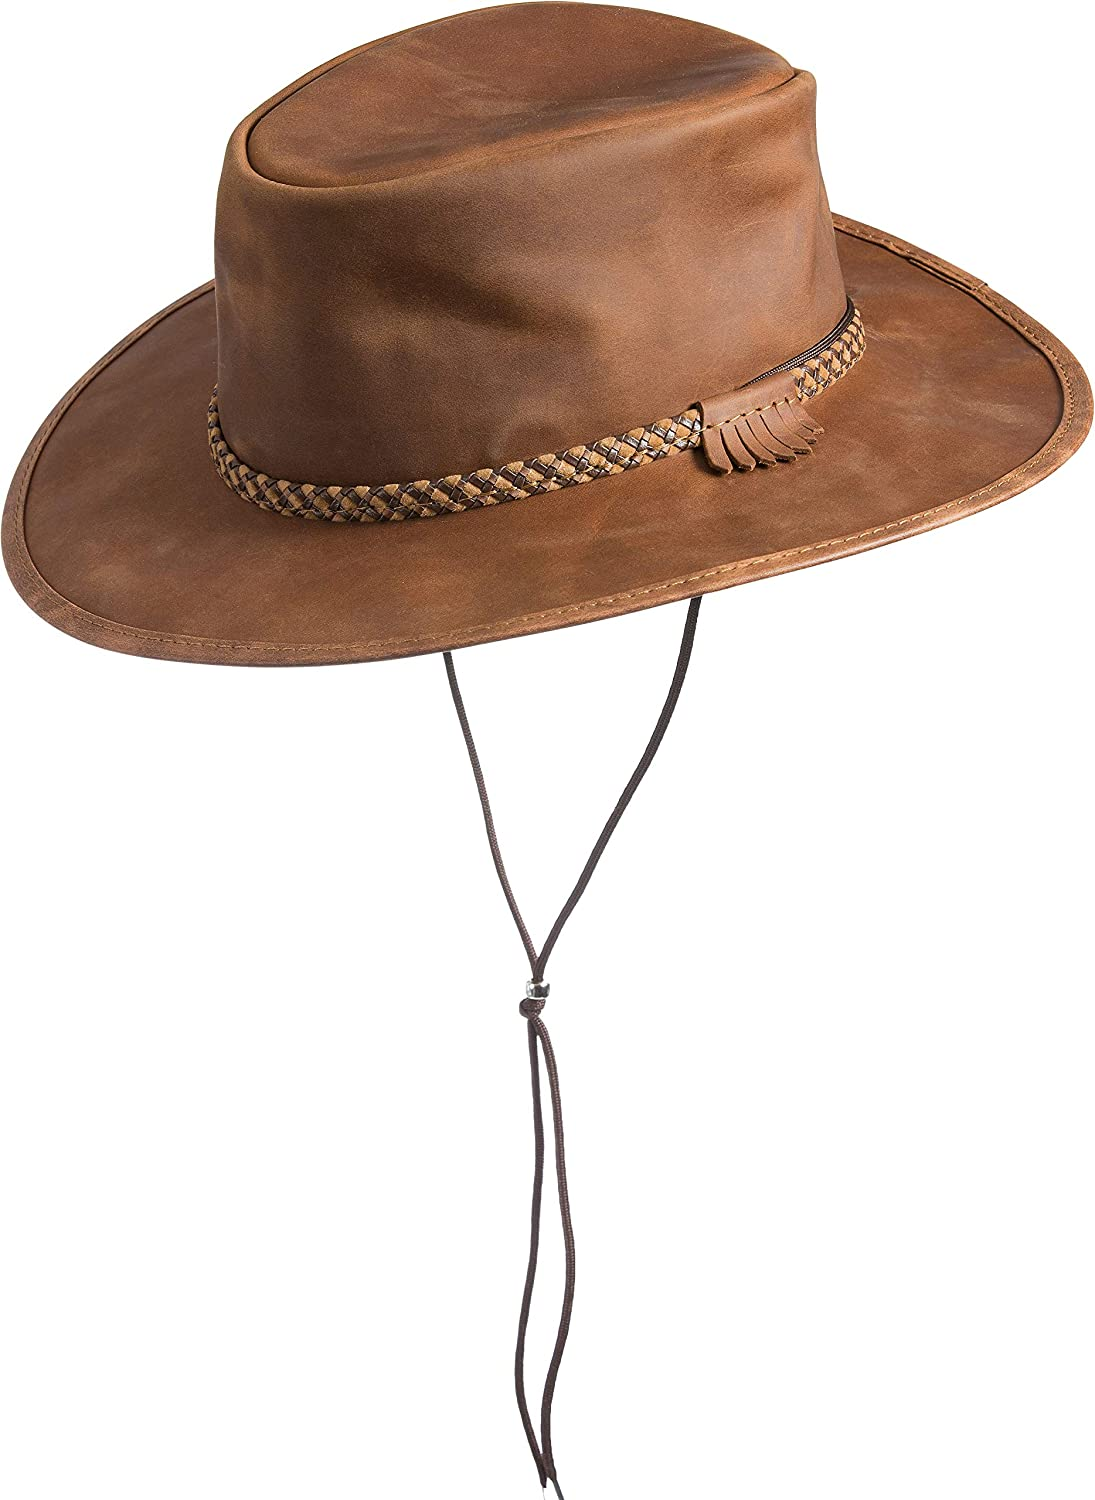 Overland Sheepskin Co Rancher Crushable Oiled-Leather Cowboy Hat at Amazon  Women s Clothing store  39f936624bc